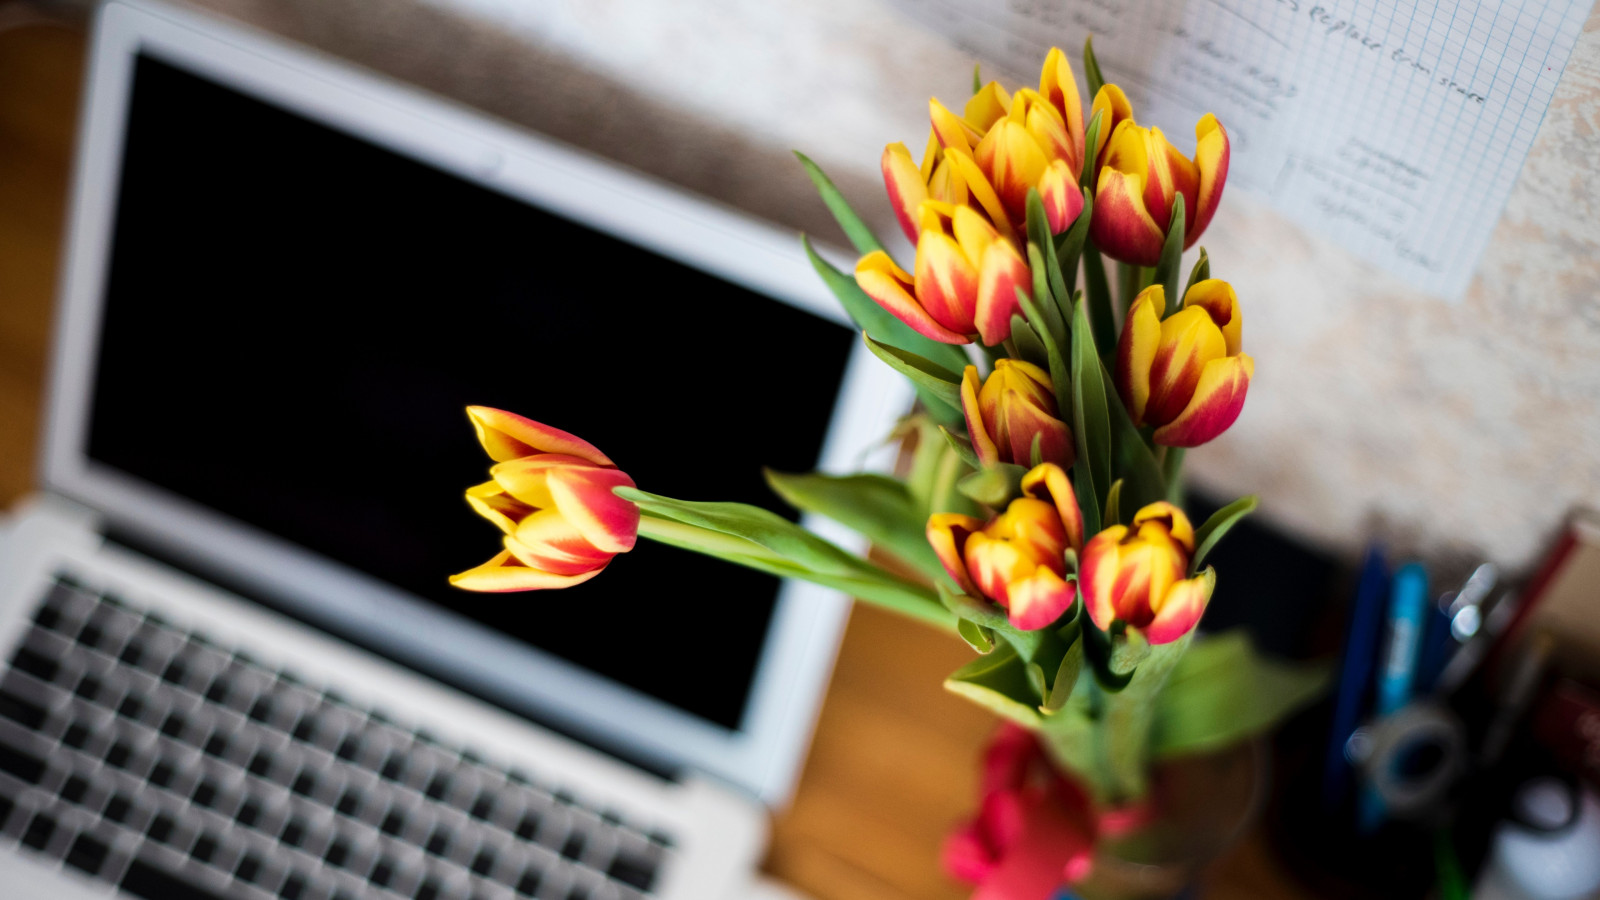 Laptop and tulips bouquet wallpaper 1600x900